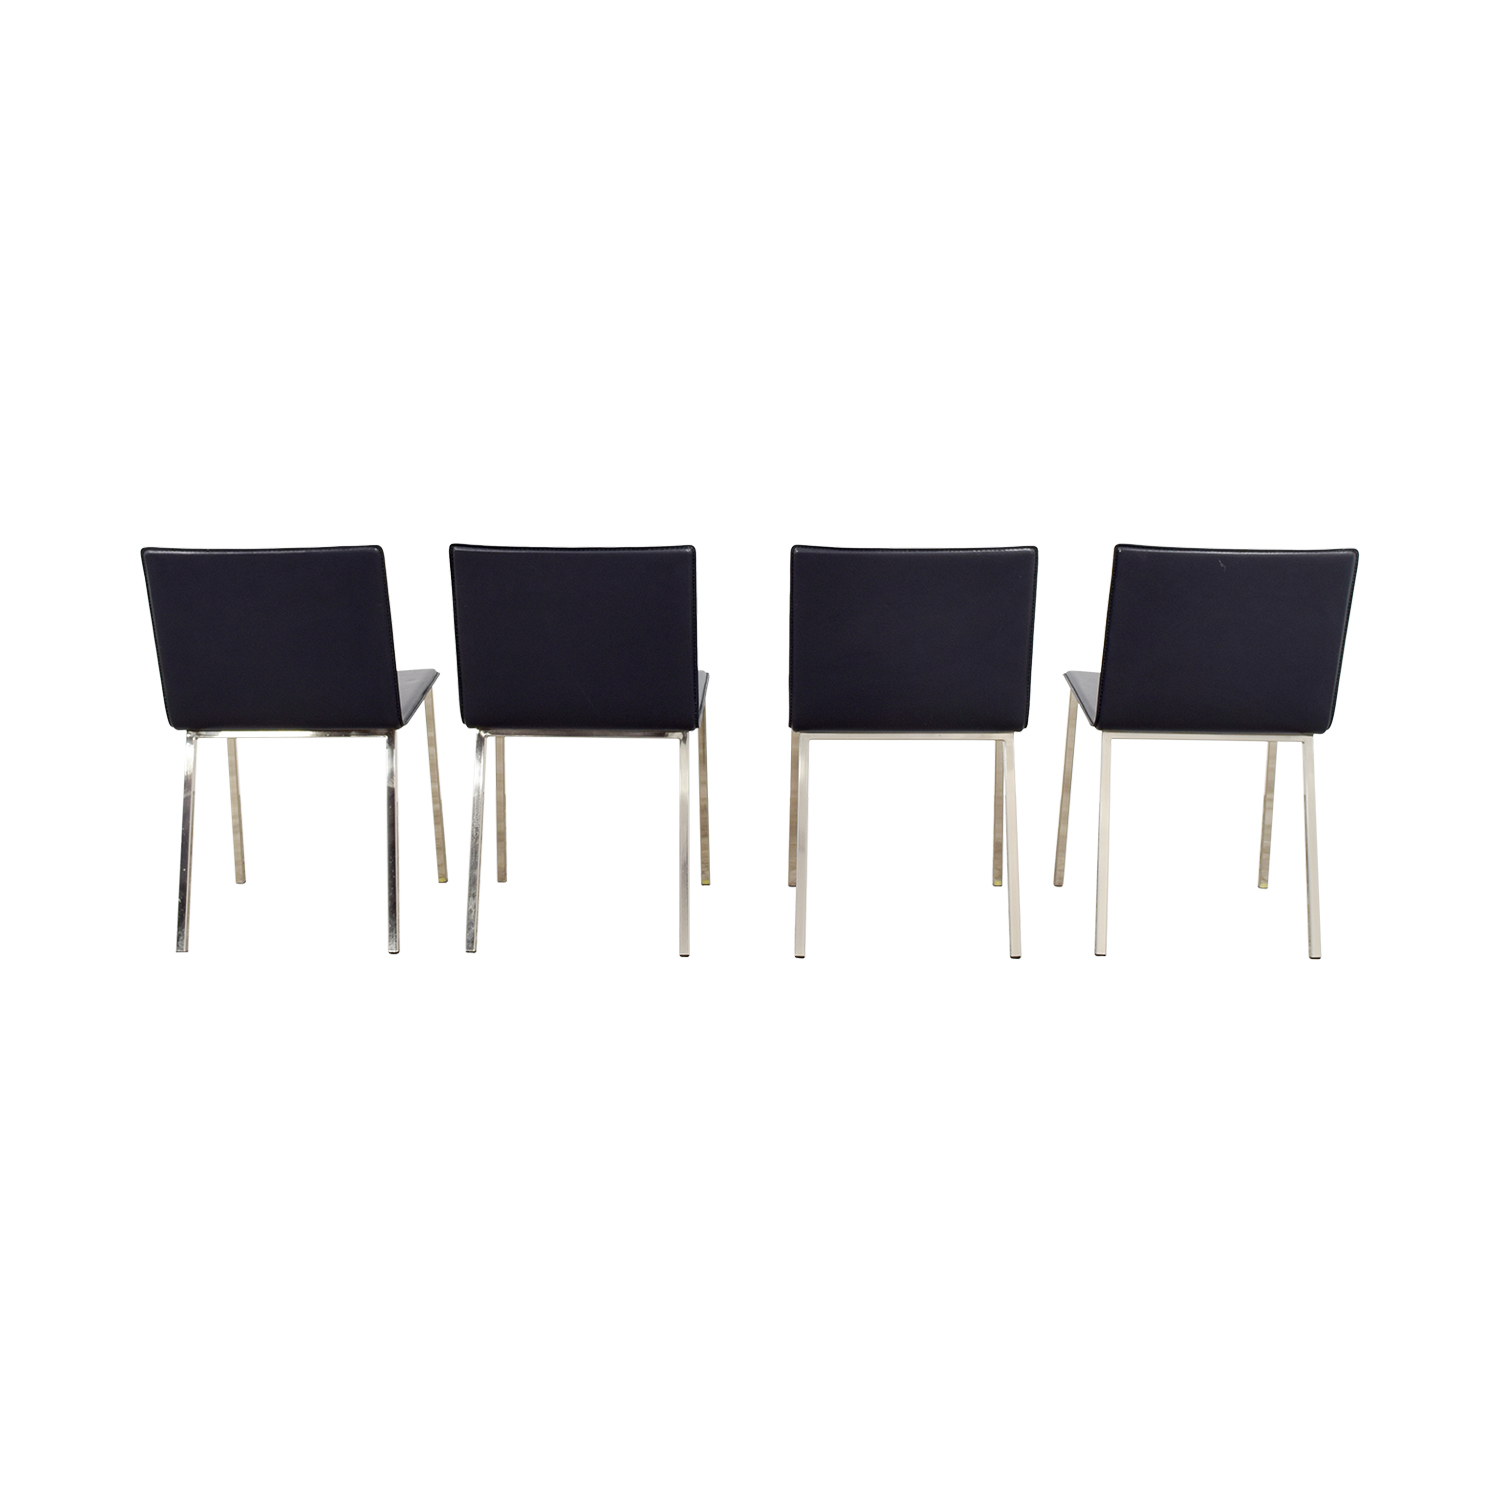 CB2 Grey Leather Chairs / Dining Chairs